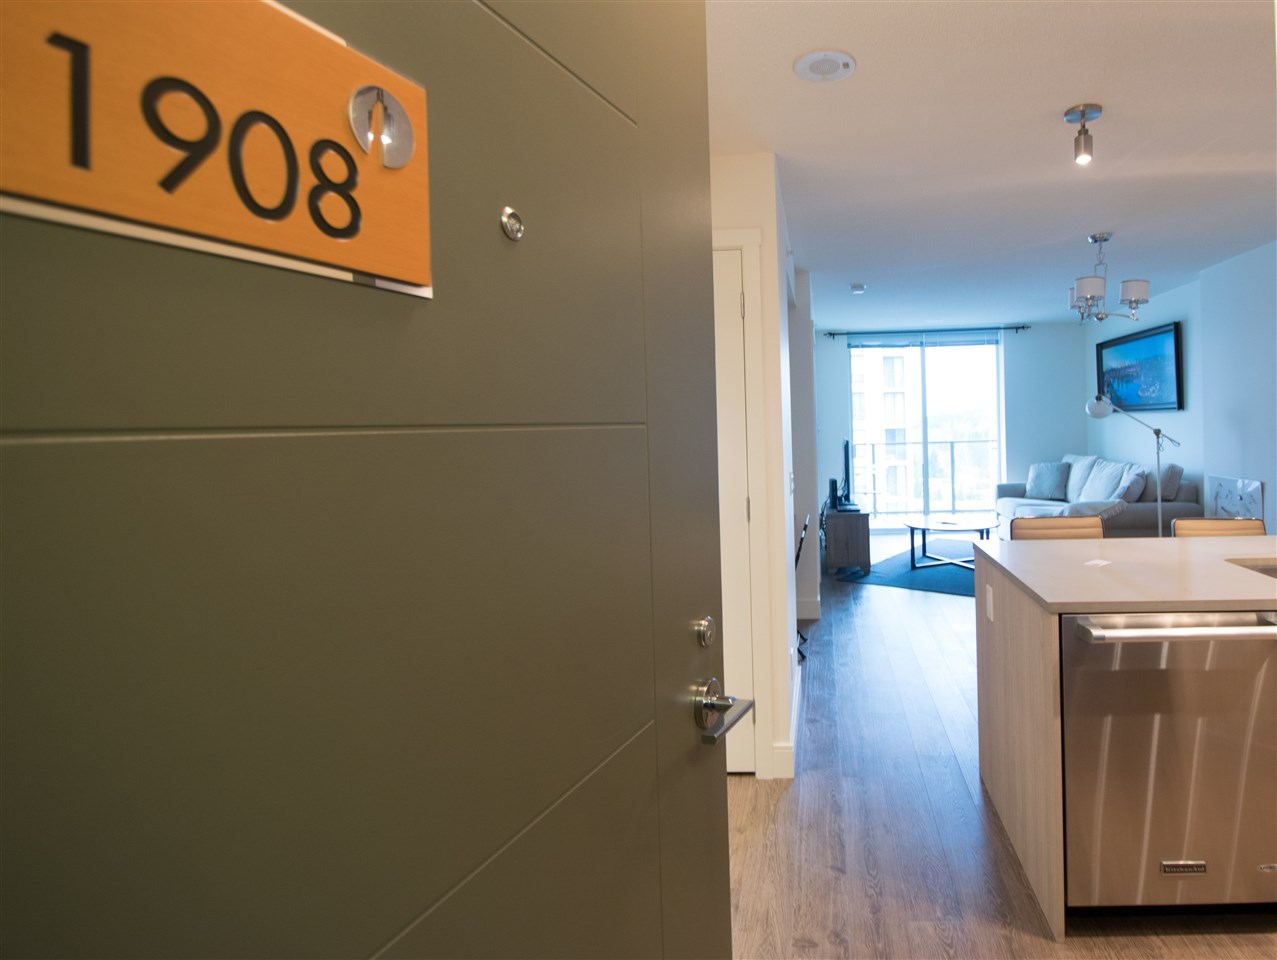 "Photo 2: 1908 3007 GLEN Drive in Coquitlam: North Coquitlam Condo for sale in ""EVERGREEN BY BOSA"" : MLS® # R2131951"